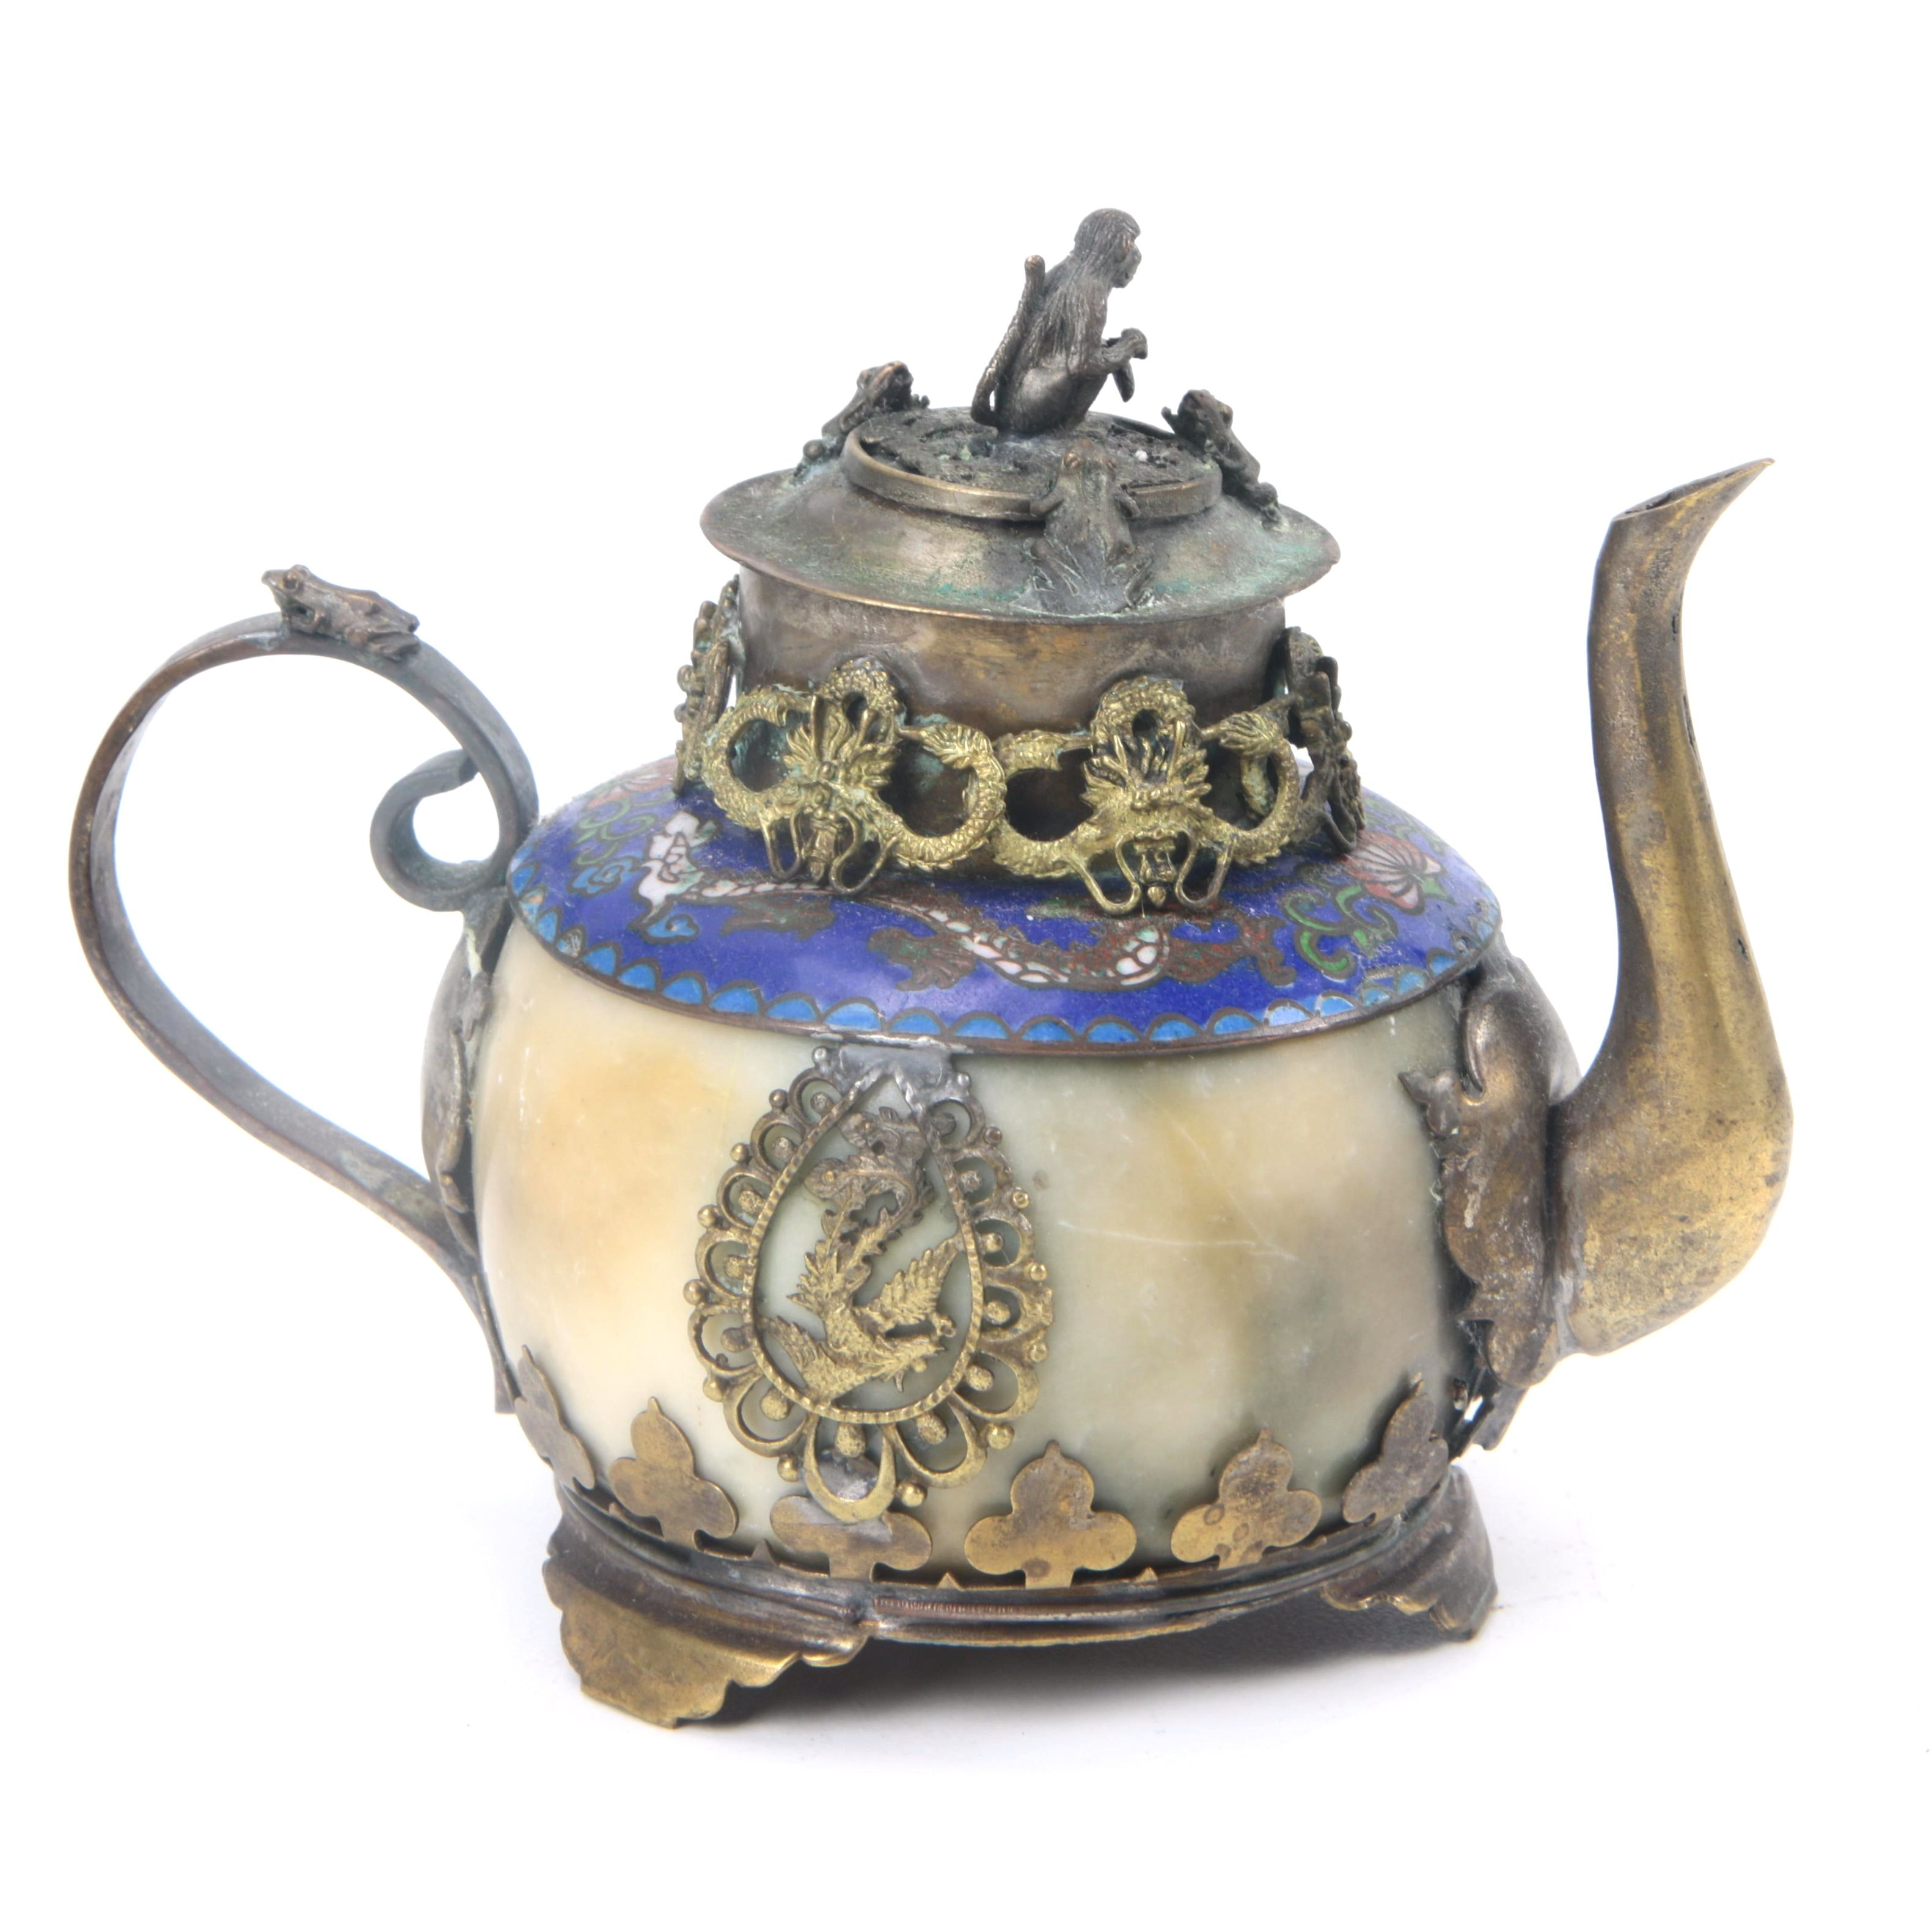 Brass, Soapstone and Cloisonne Teapot